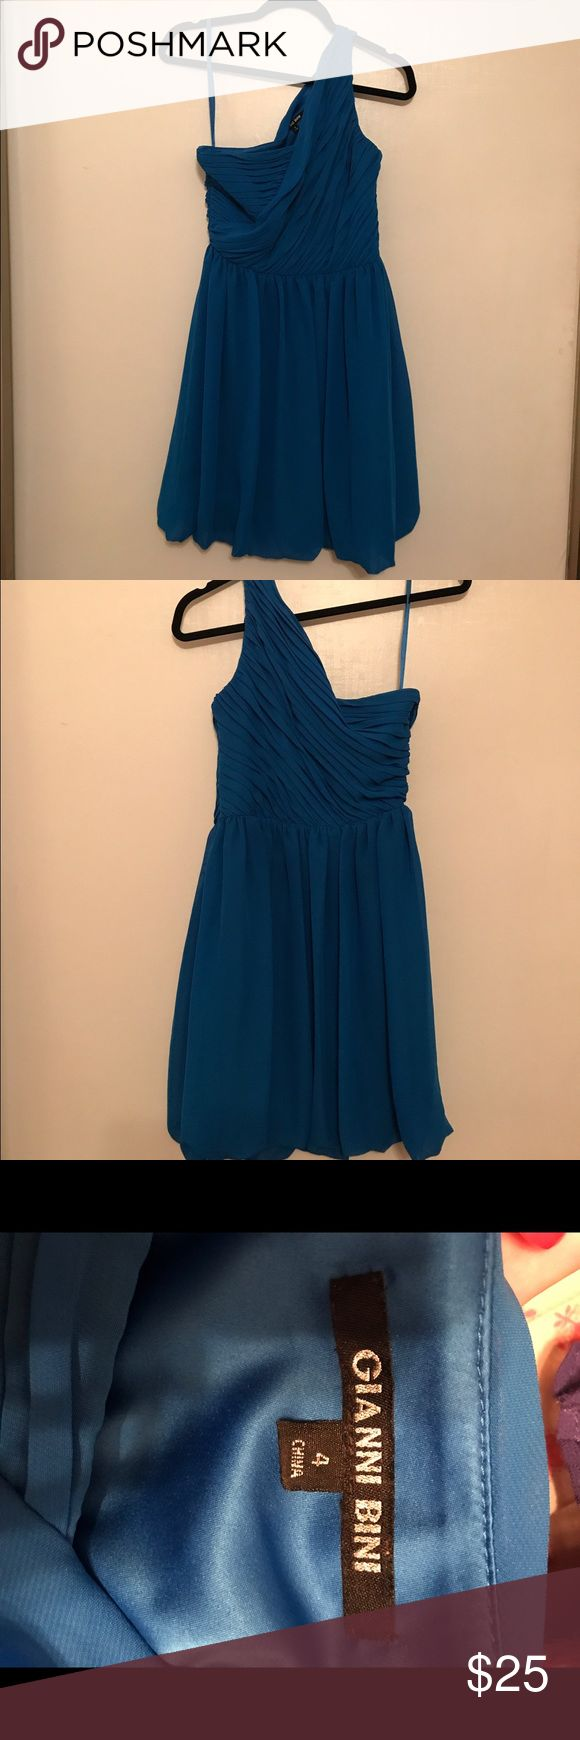 Gianni Bini One Strap Dress One strap, blue very fun and light weight dress Gianni Bini Dresses One Shoulder